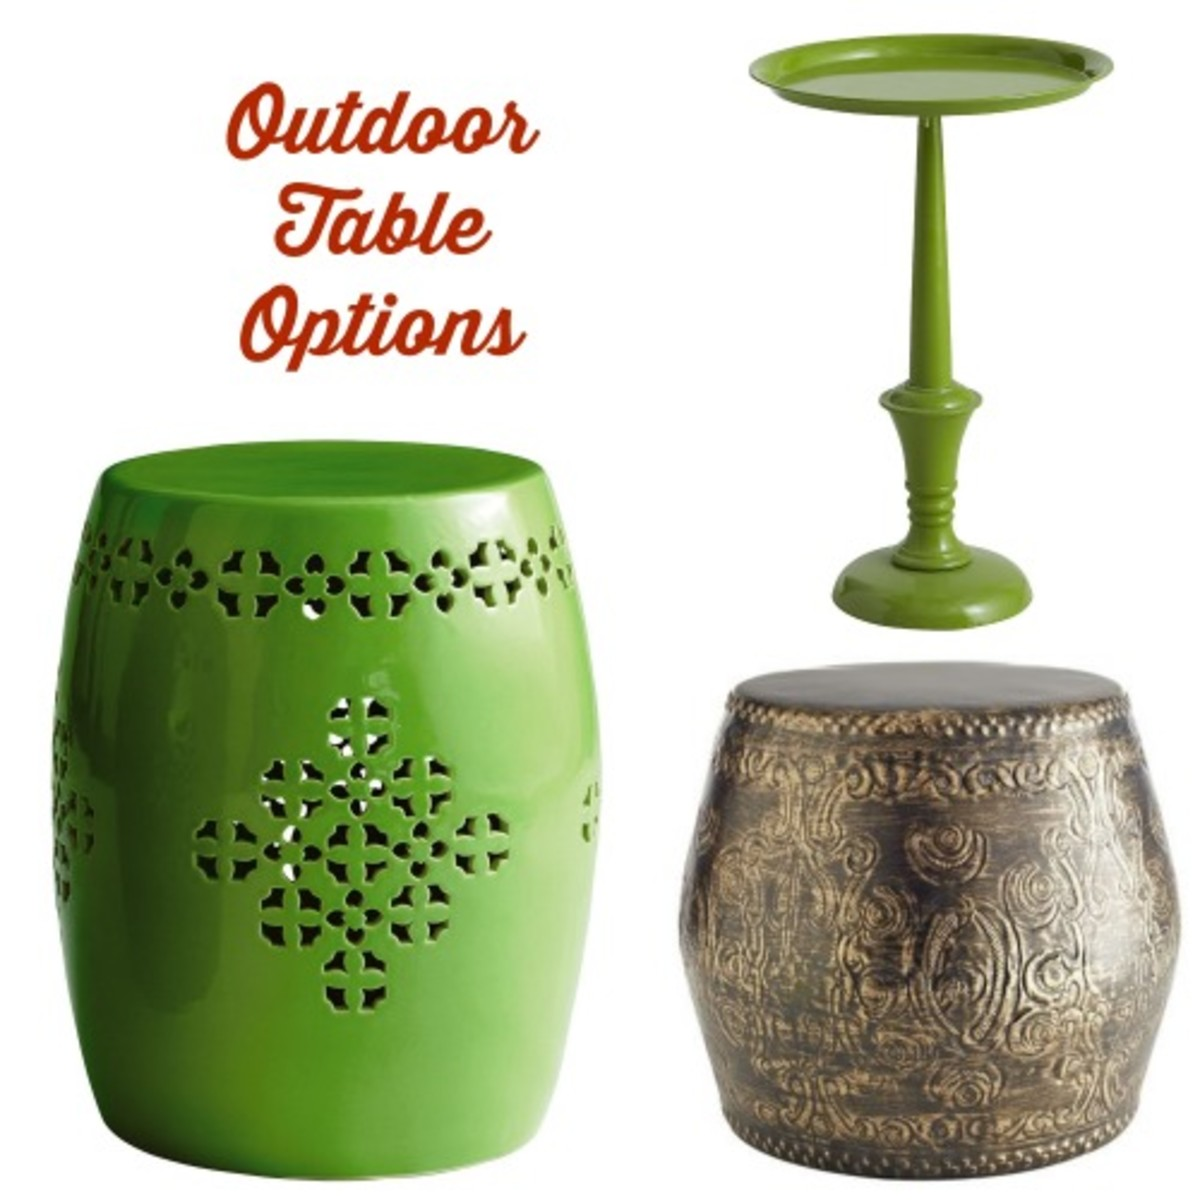 outdoor table options